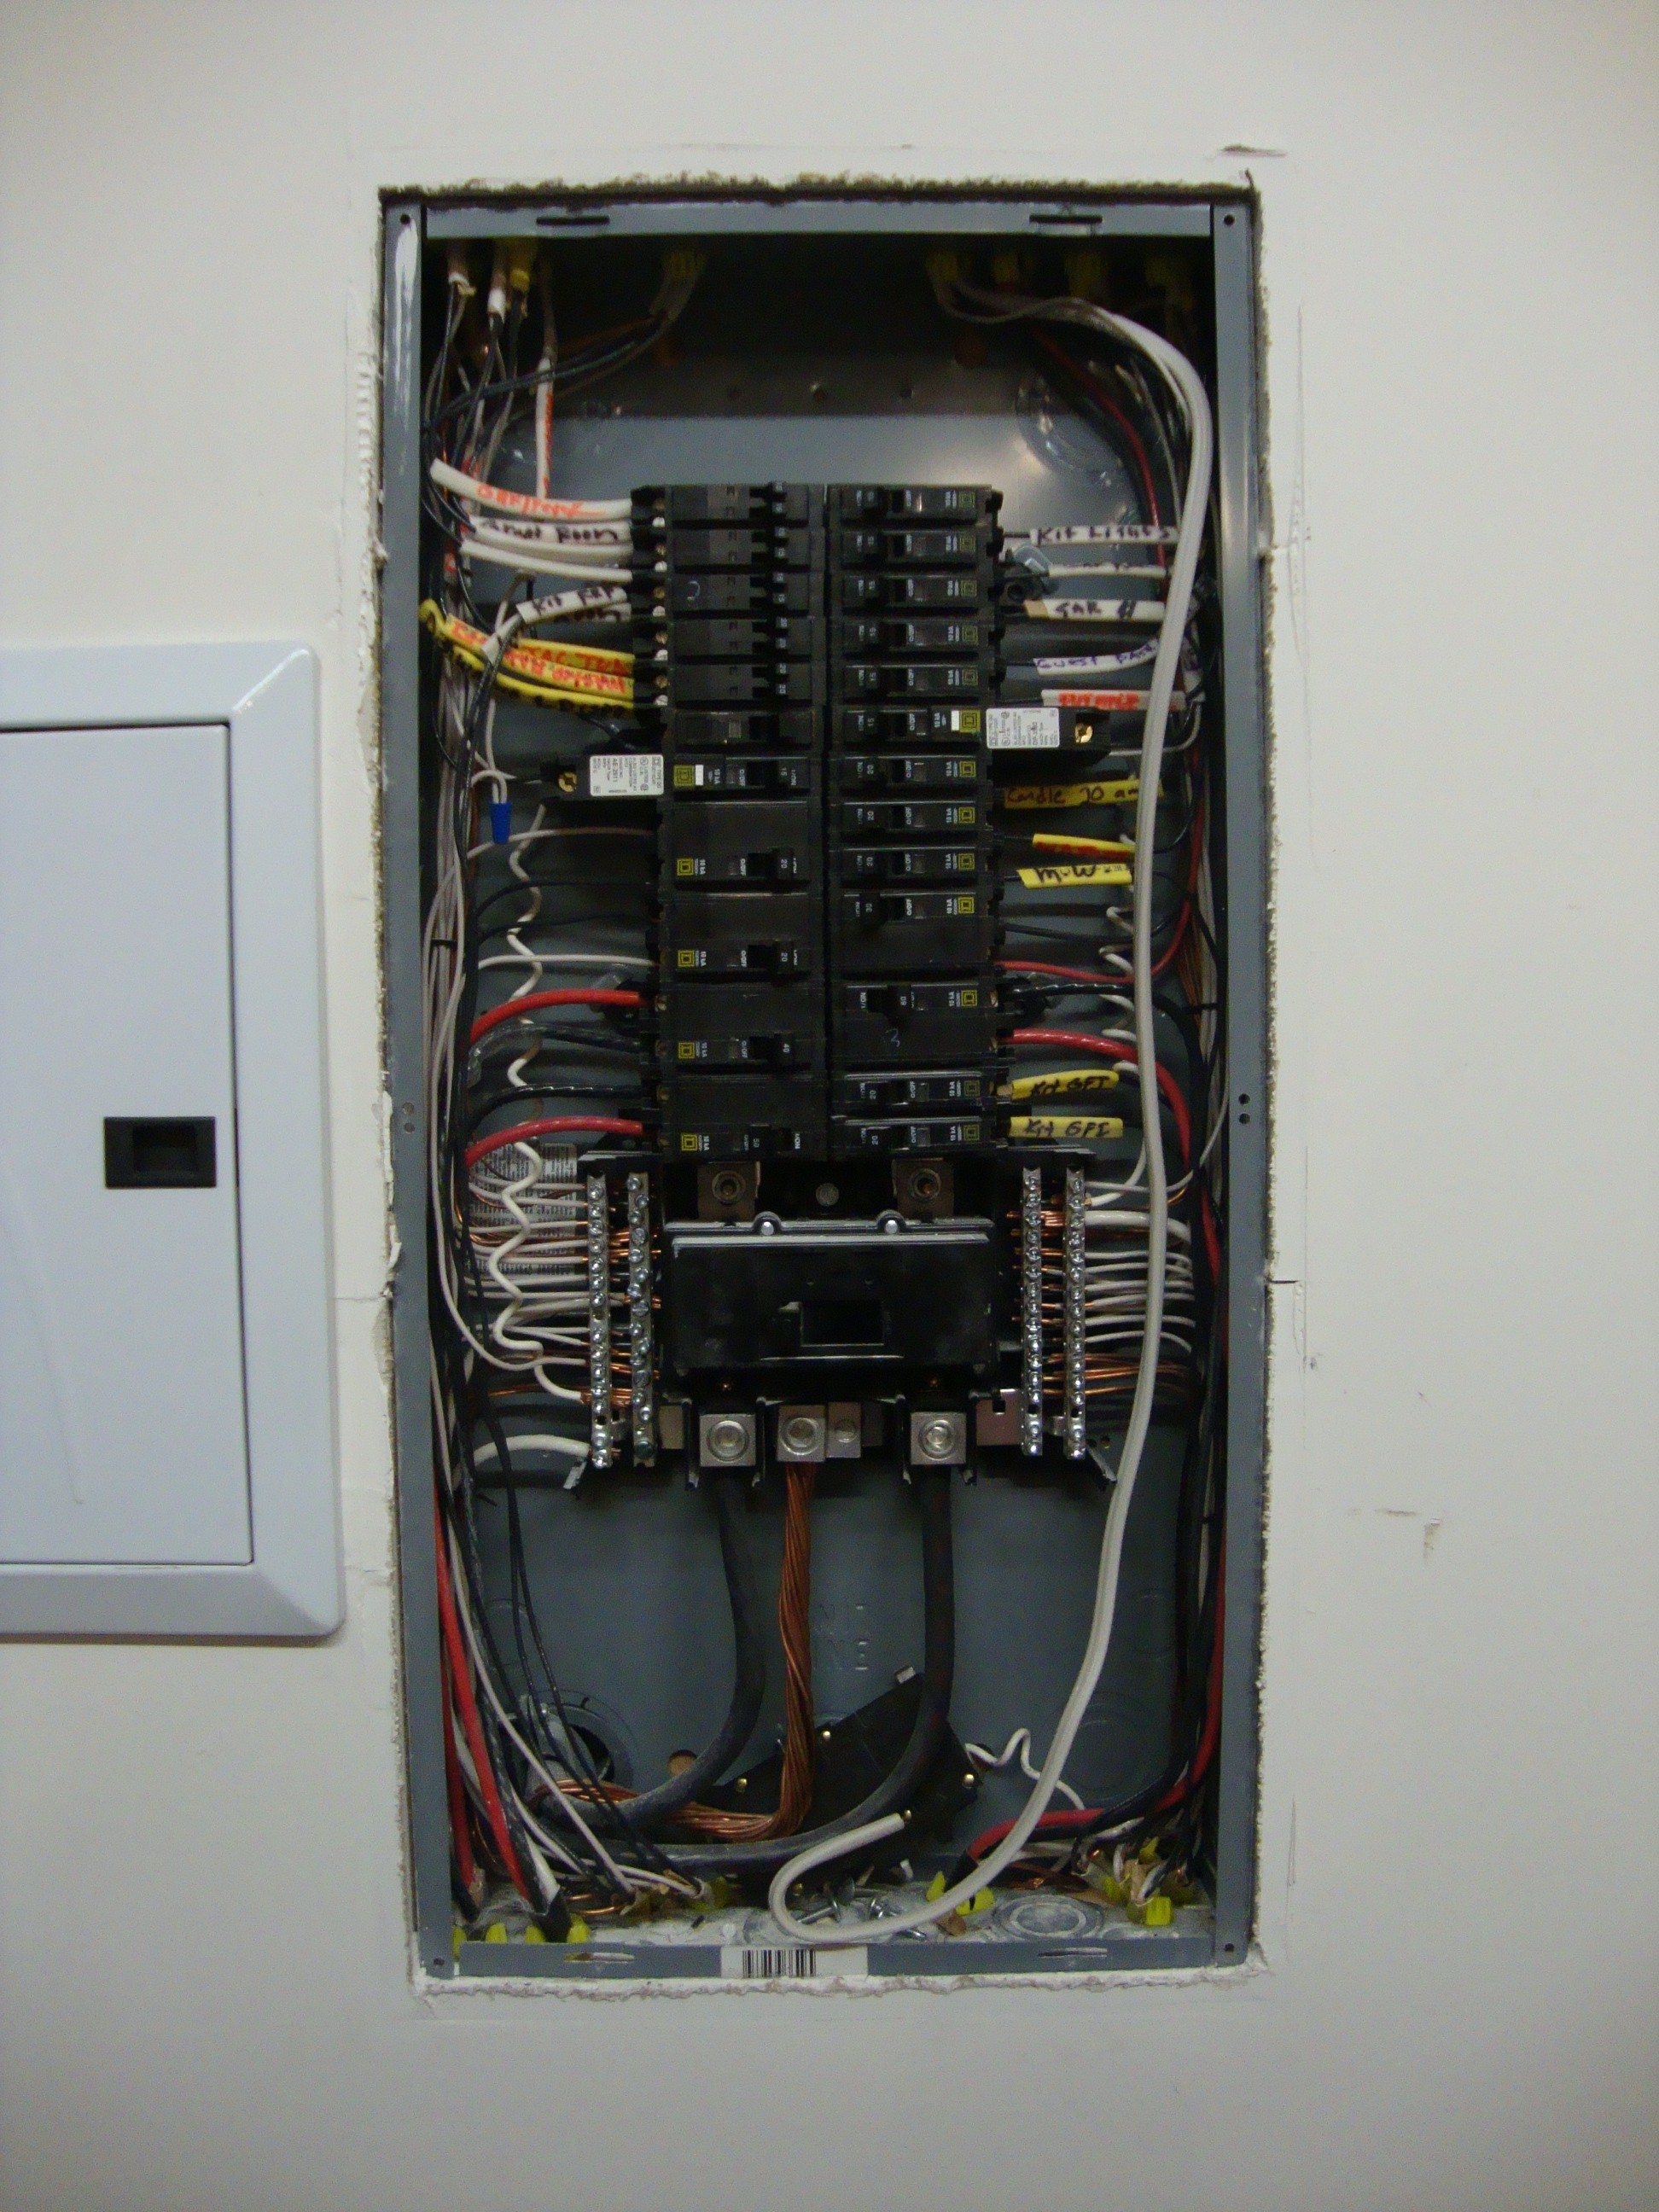 Wired-panel-e1399399849463